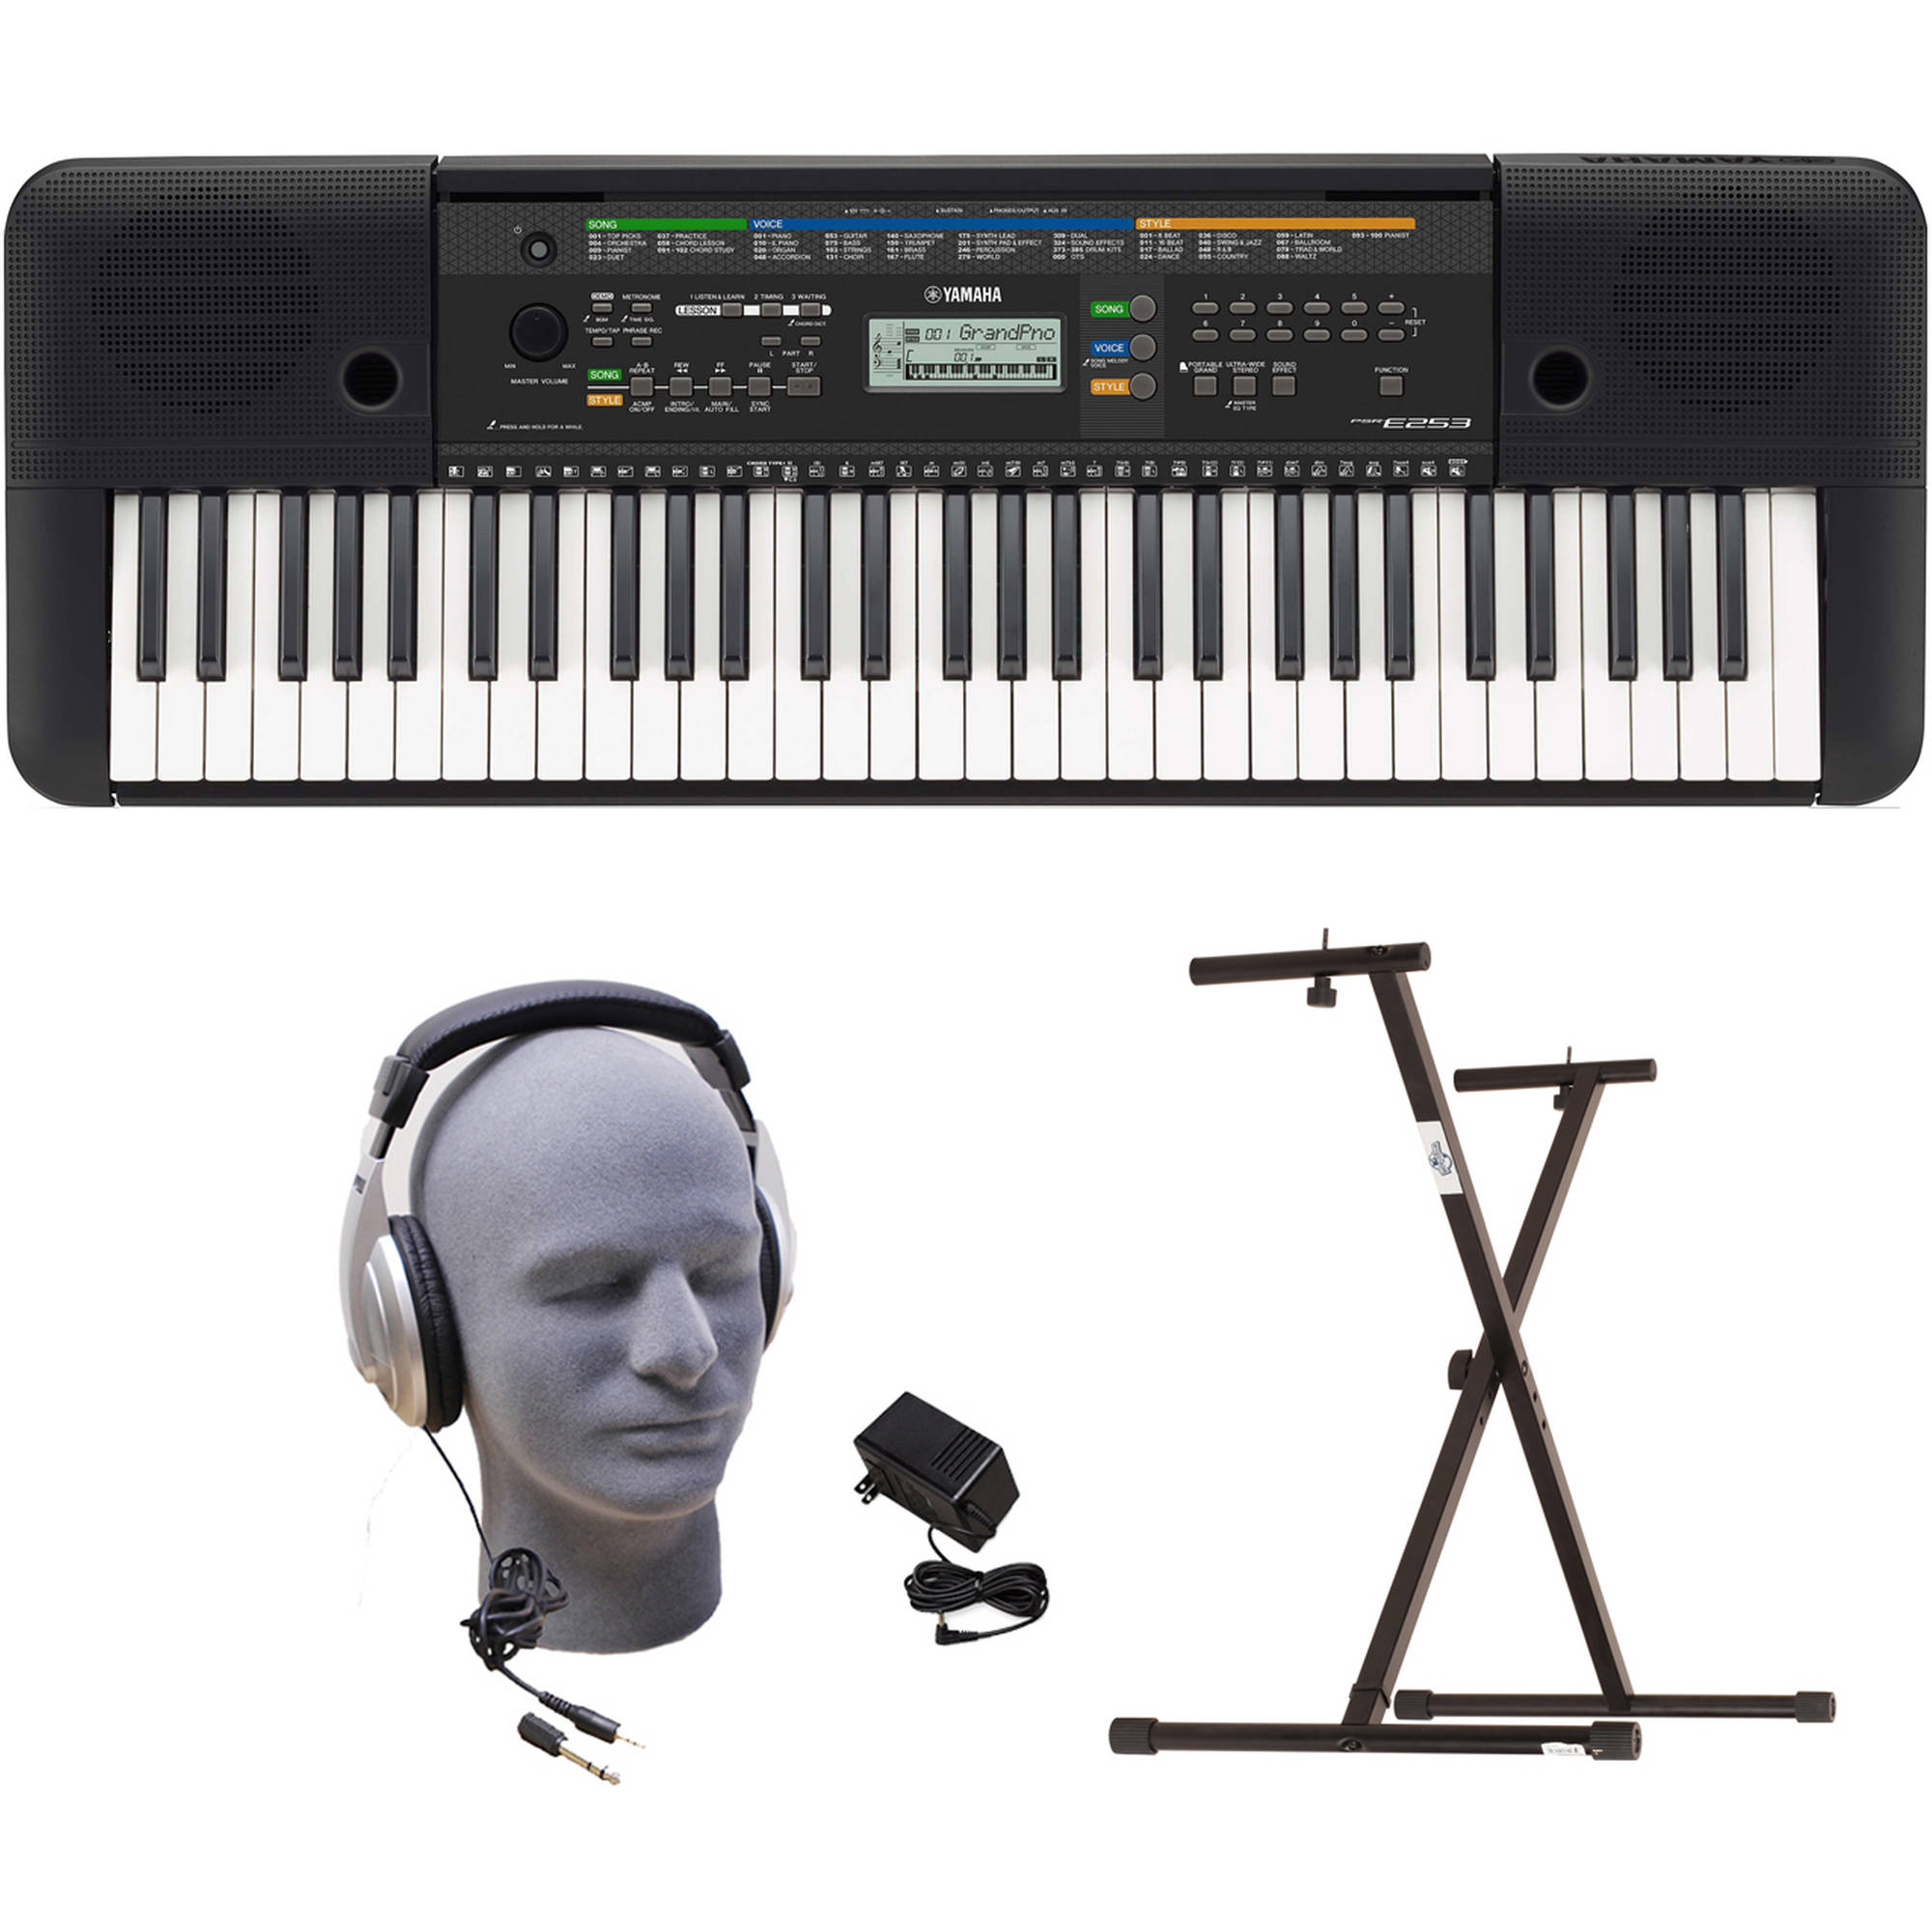 Yamaha PSR-E253 Portable Keyboard Package with Headphones, Power Supply and Stand by Yamaha